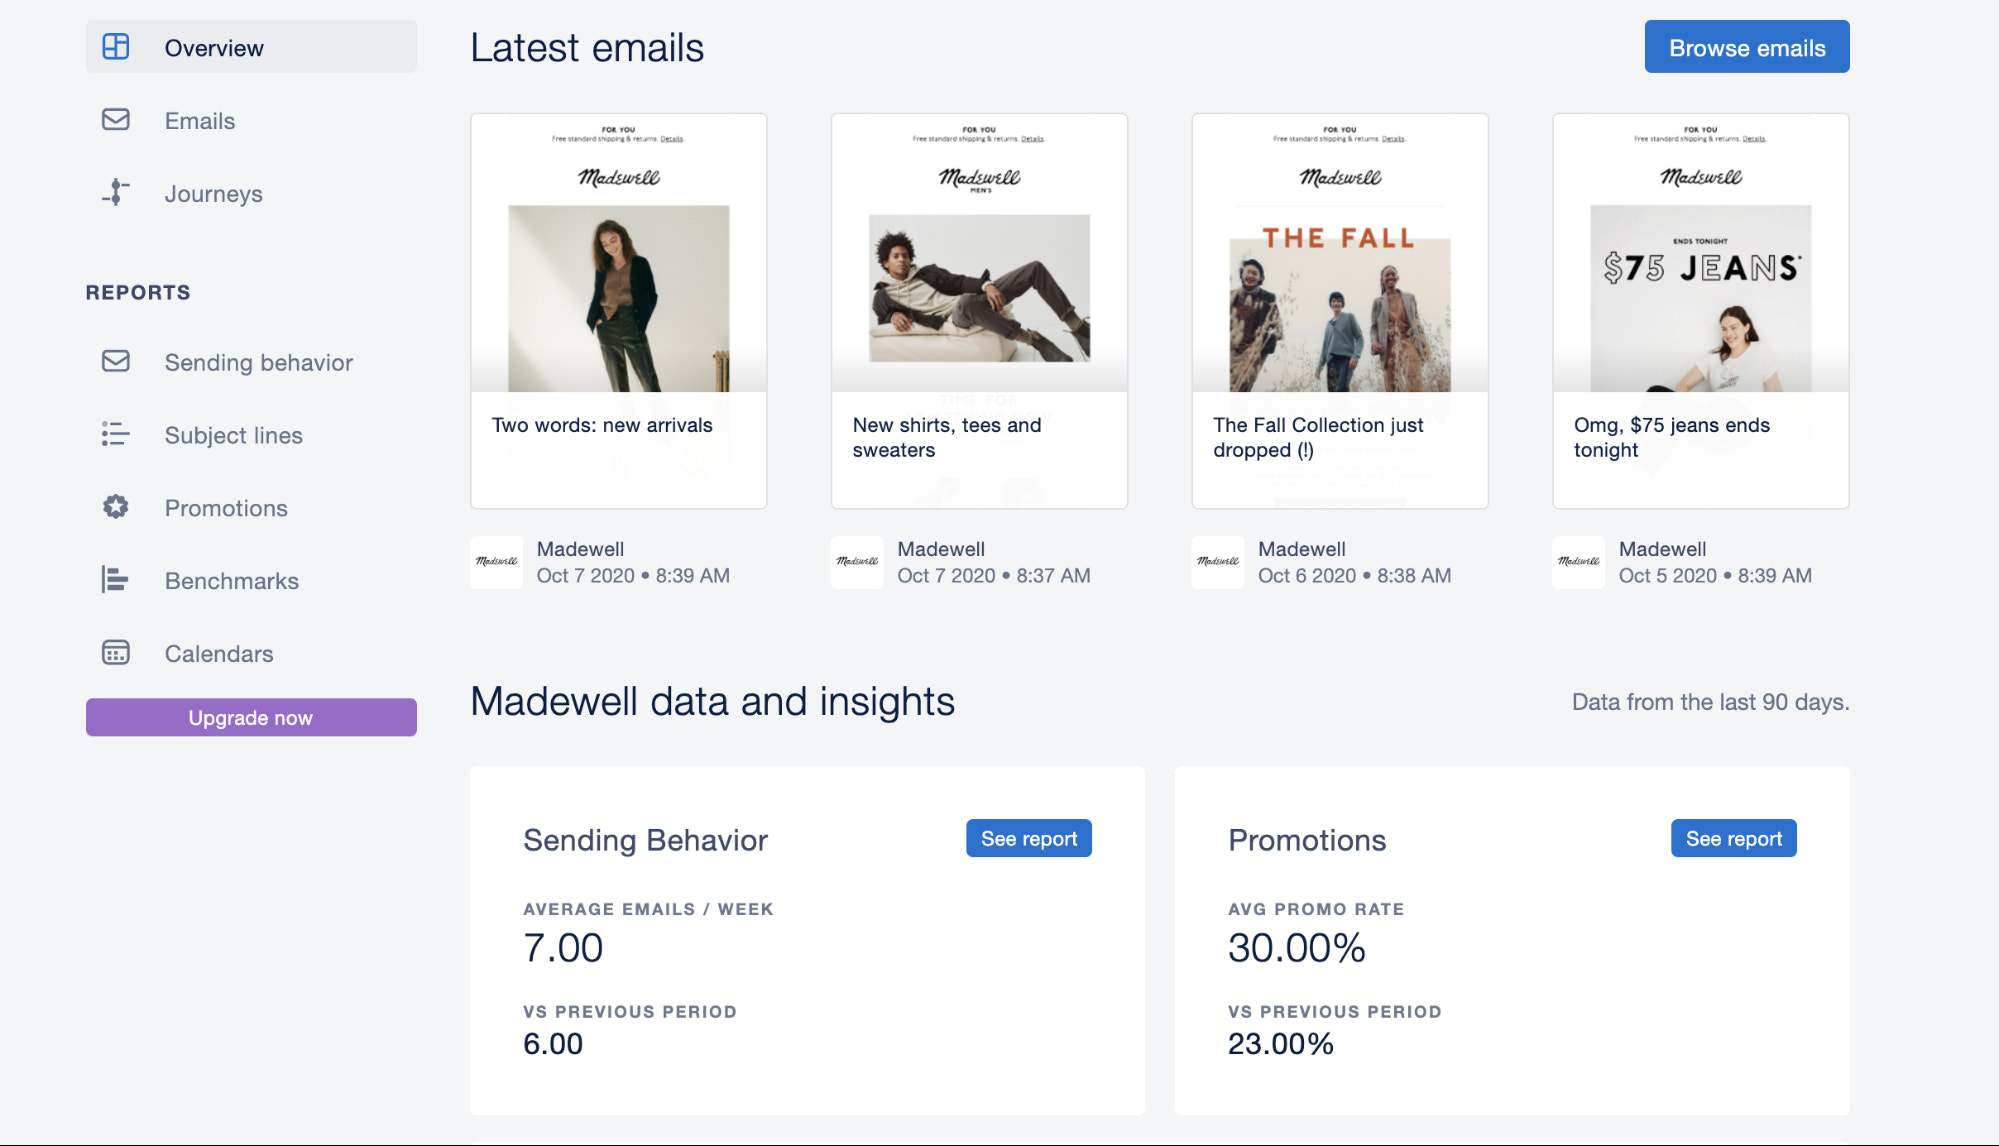 mailcharts email marketing analysis